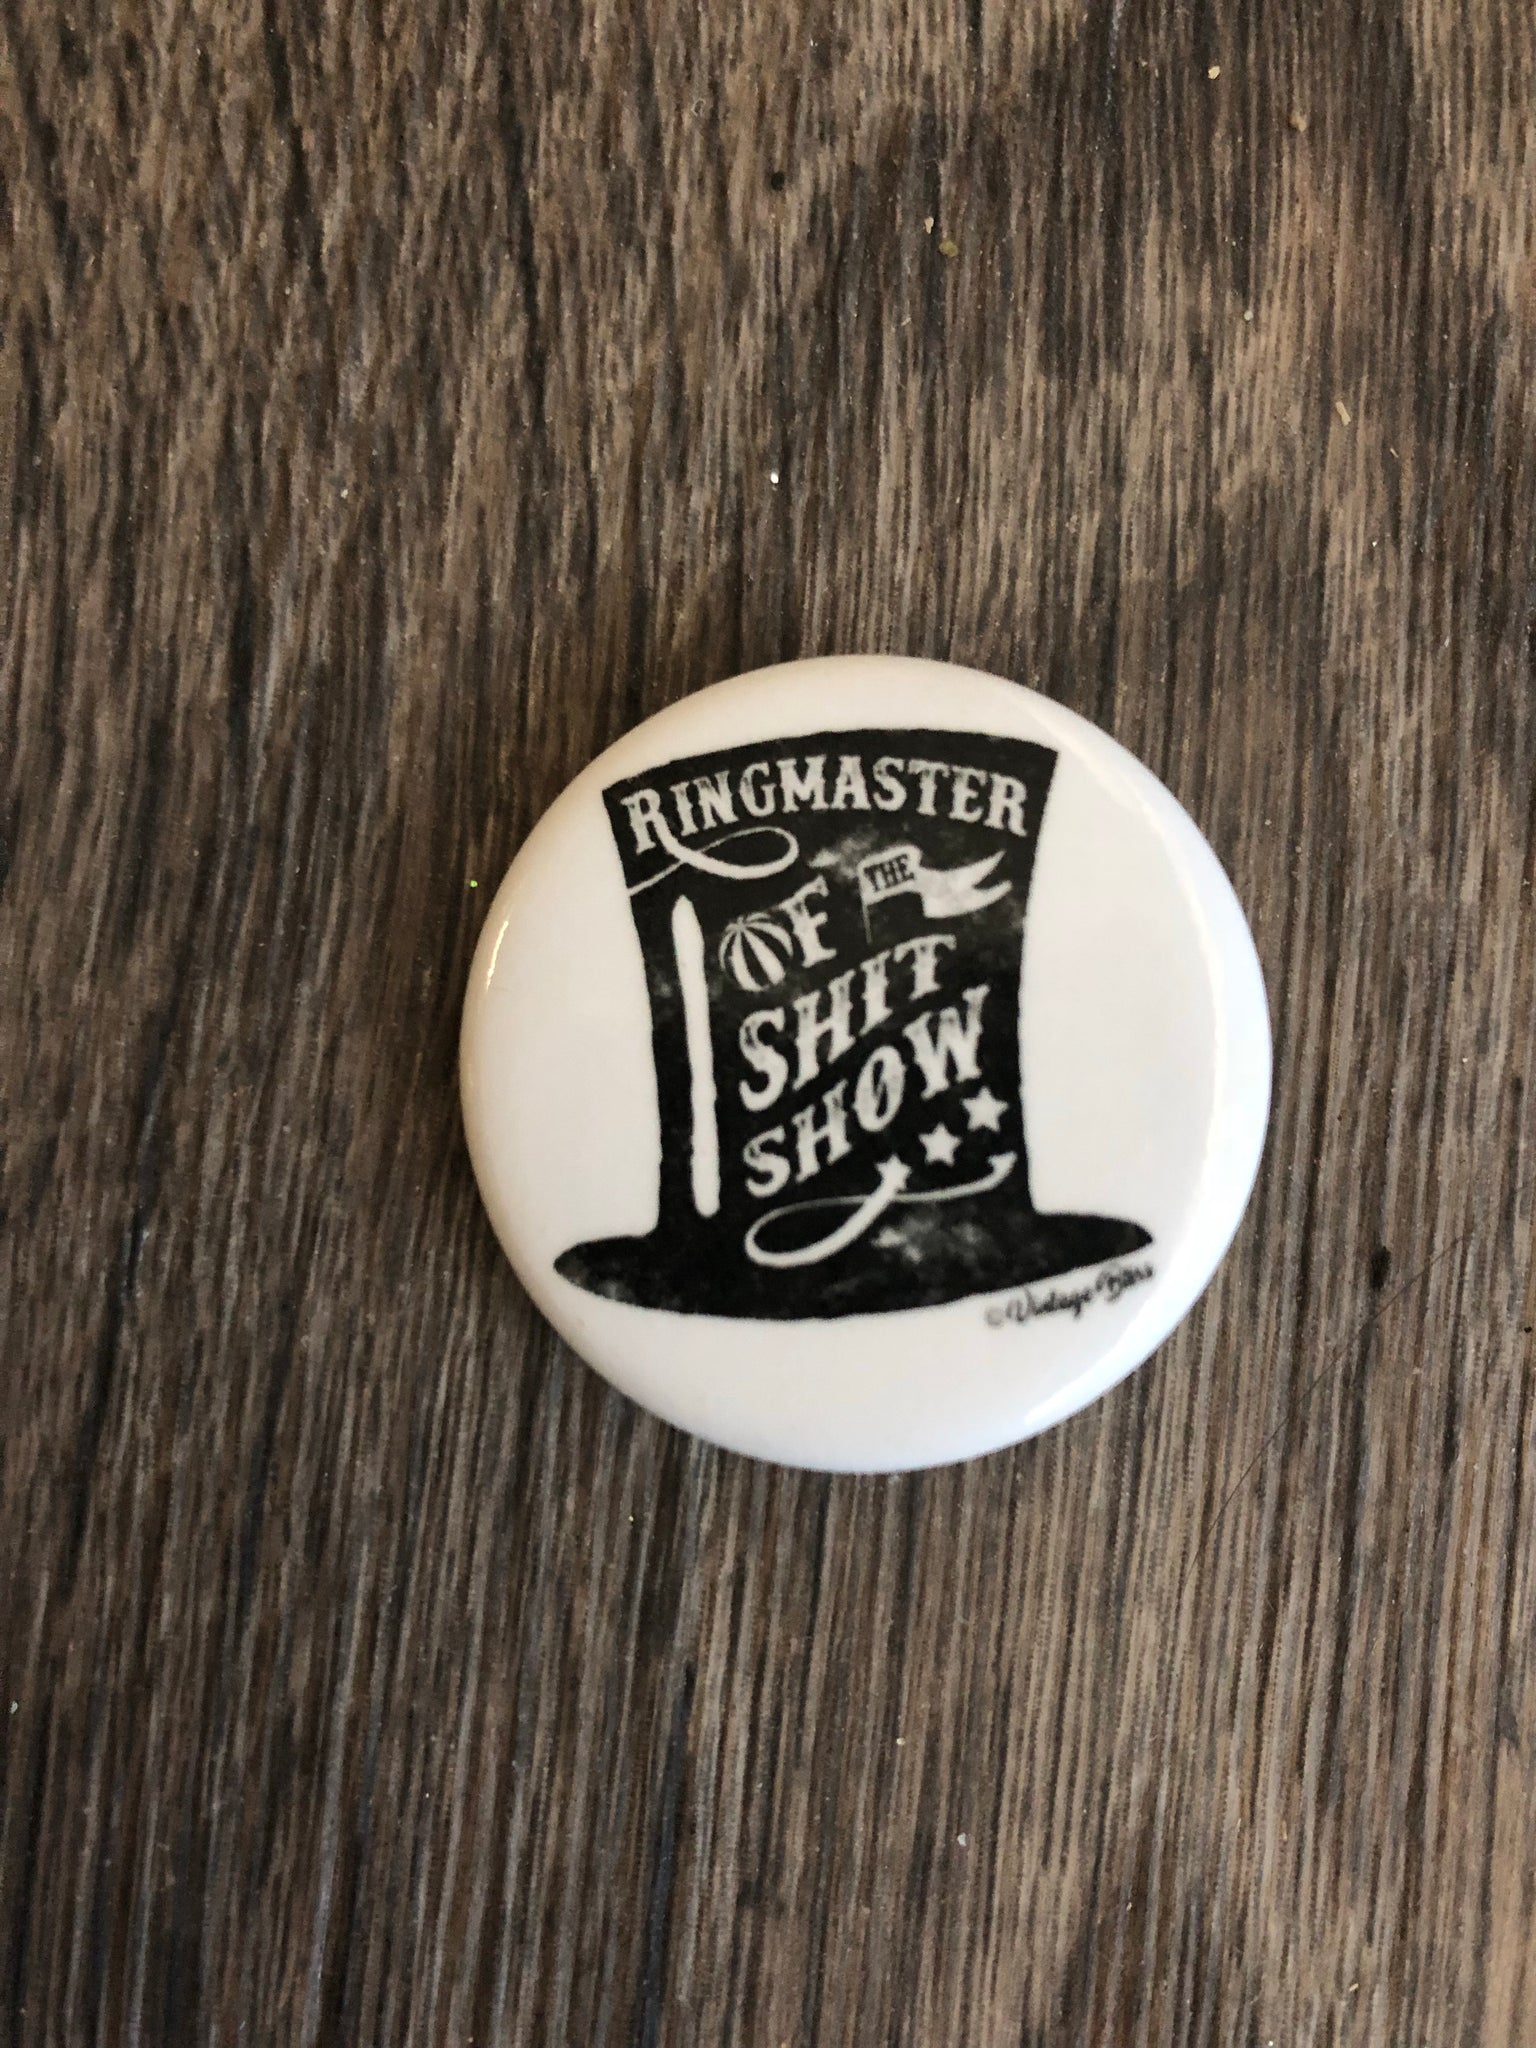 "Ringmaster of the Shitshow 1"" Button"